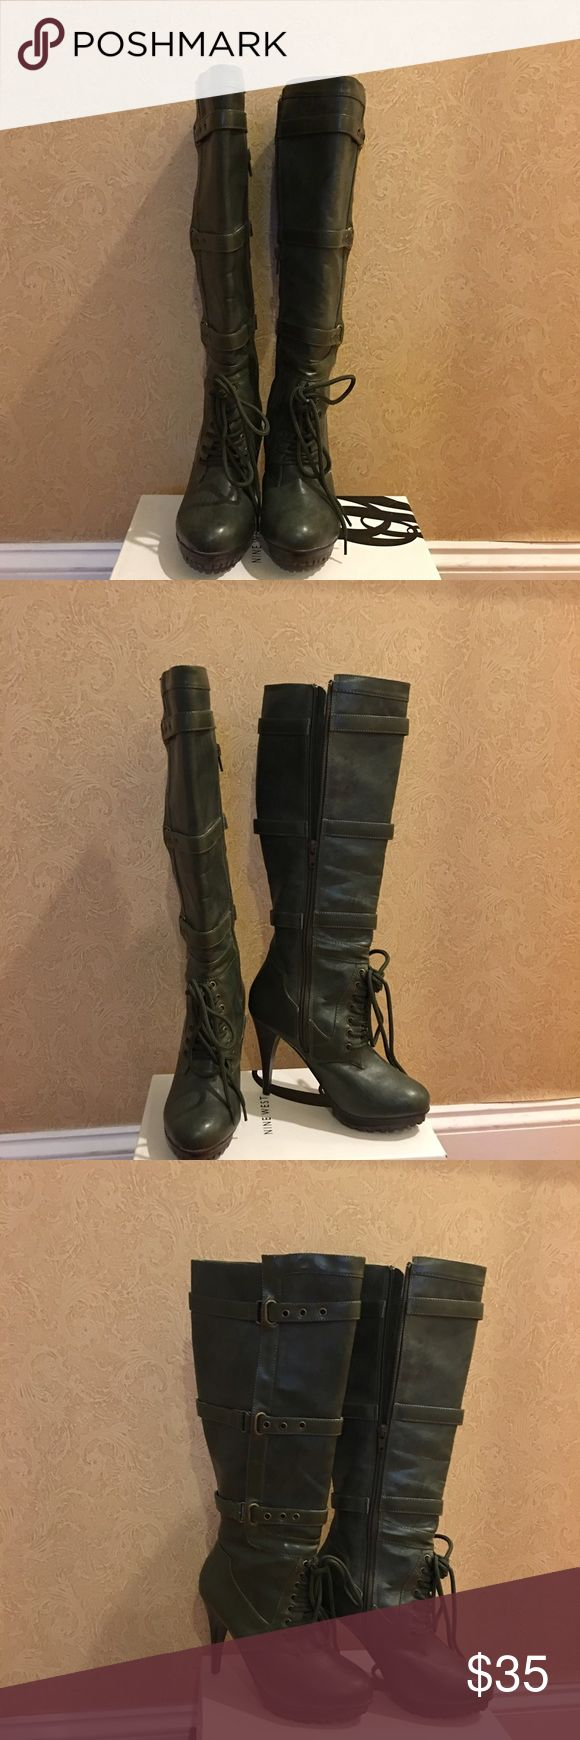 Knee High Boots Wear these high-heeled, green khaki boots and look great in any weather! The tread on the sole makes it a practical yet fashionable choice, even in the snow. promiscuous Shoes Heeled Boots